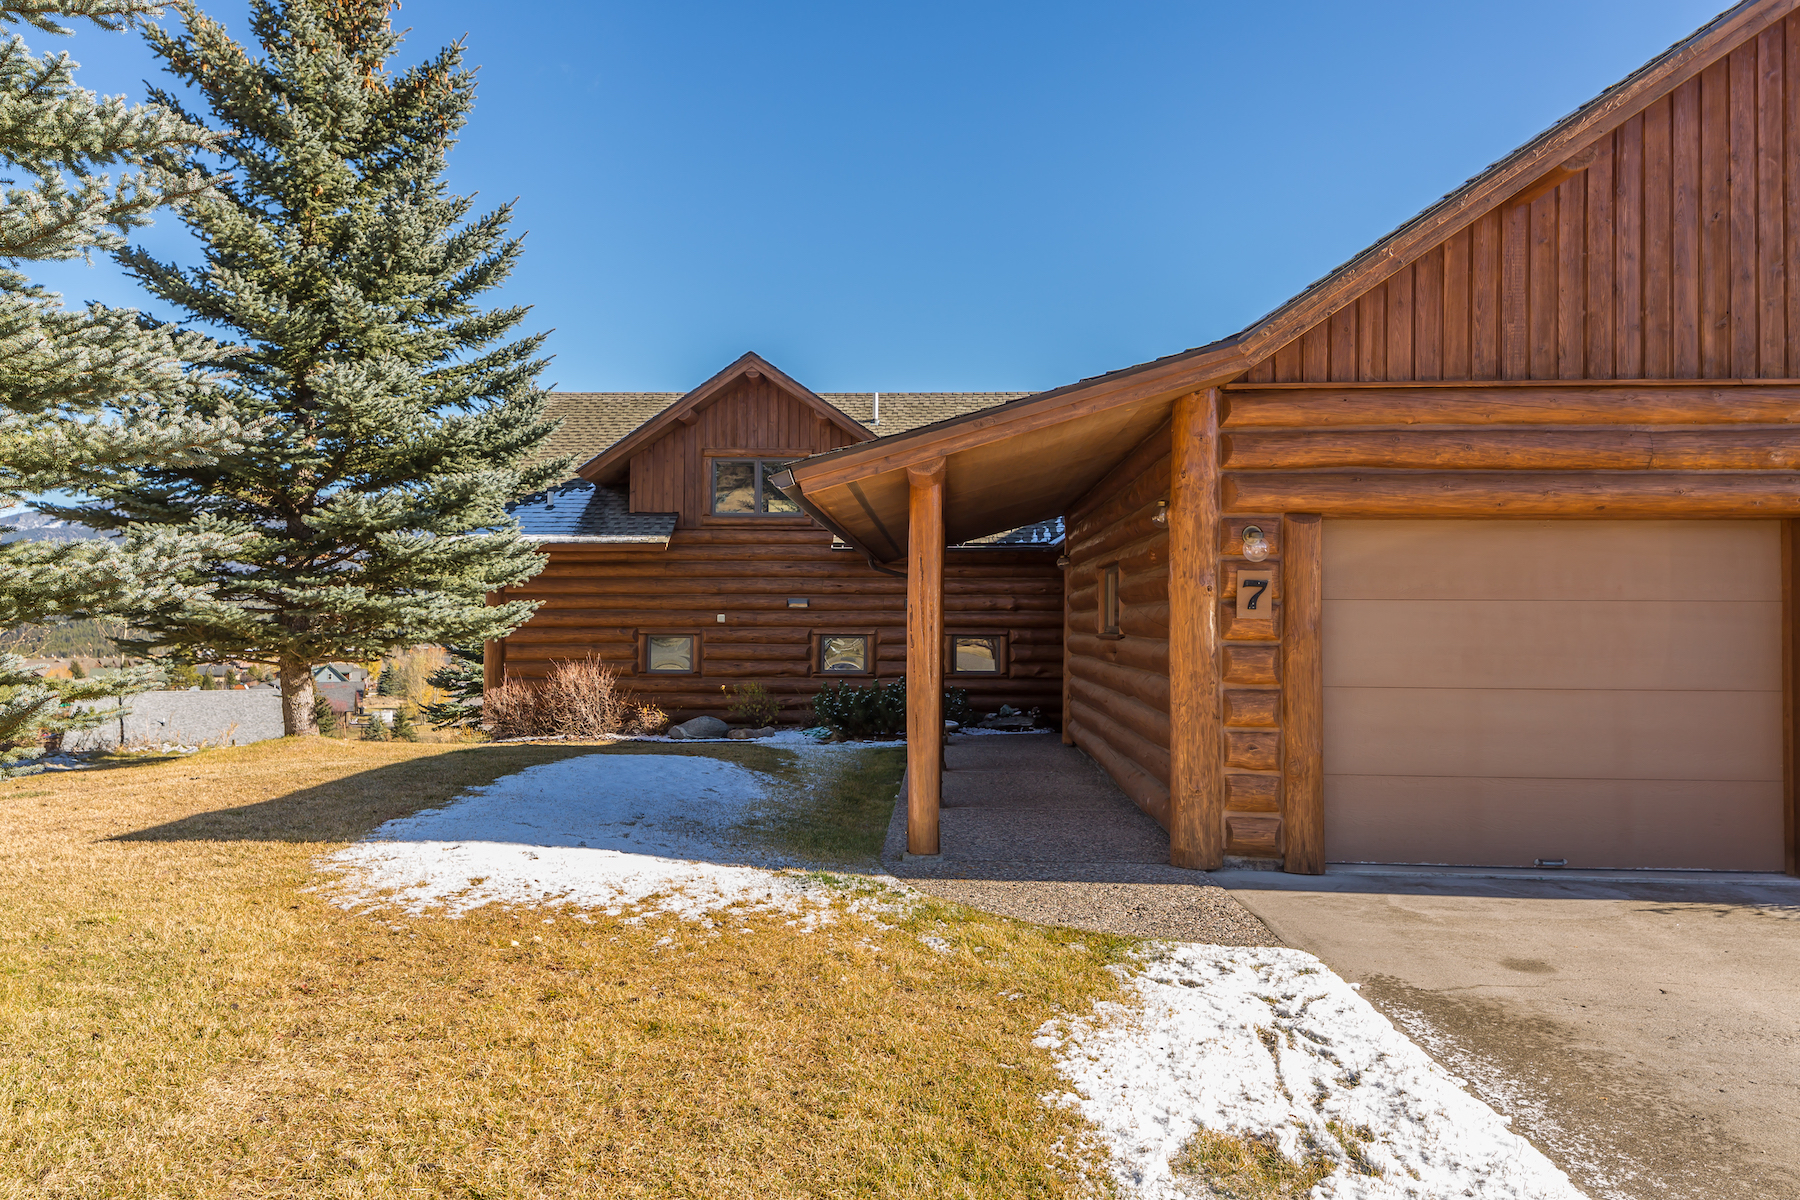 Condominium for Sale at Blue Grouse Condo 7 Ringneck Road, Big Sky, Montana, 59716 United States